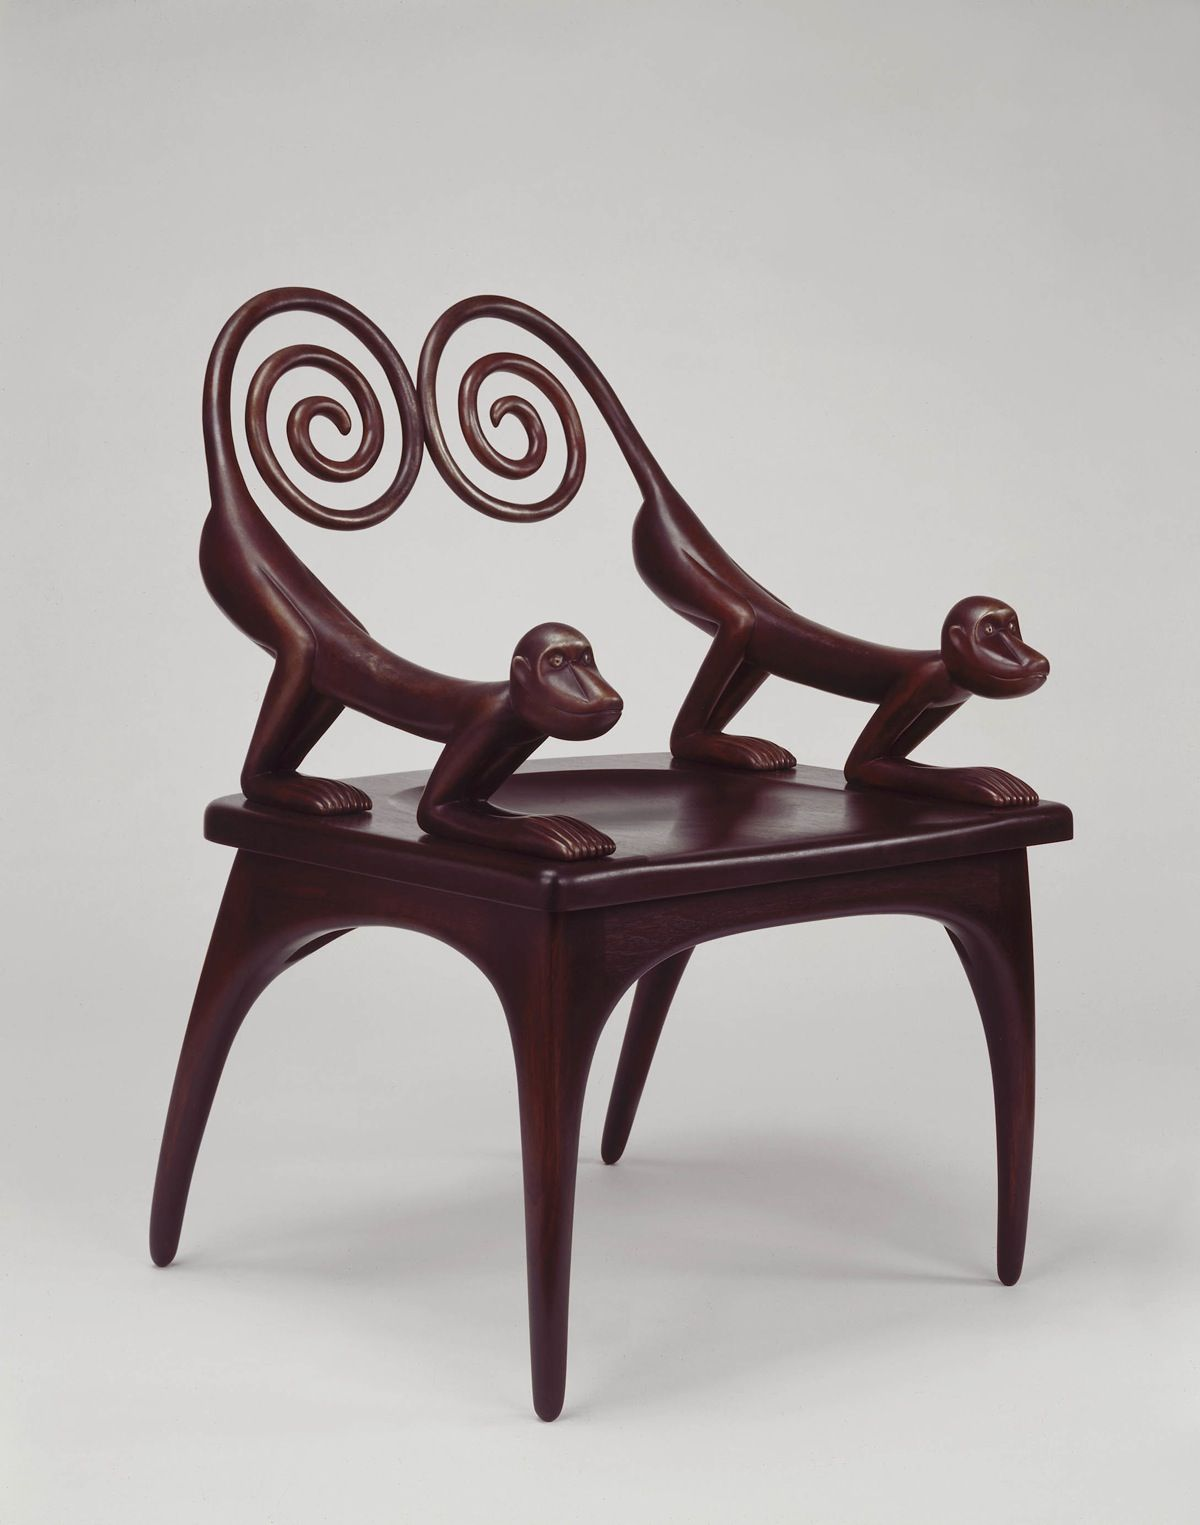 Monkey Chair 1994 Maker Judy Kensley Mckie Wild Modern Furniture Designs Pinterest Monkey